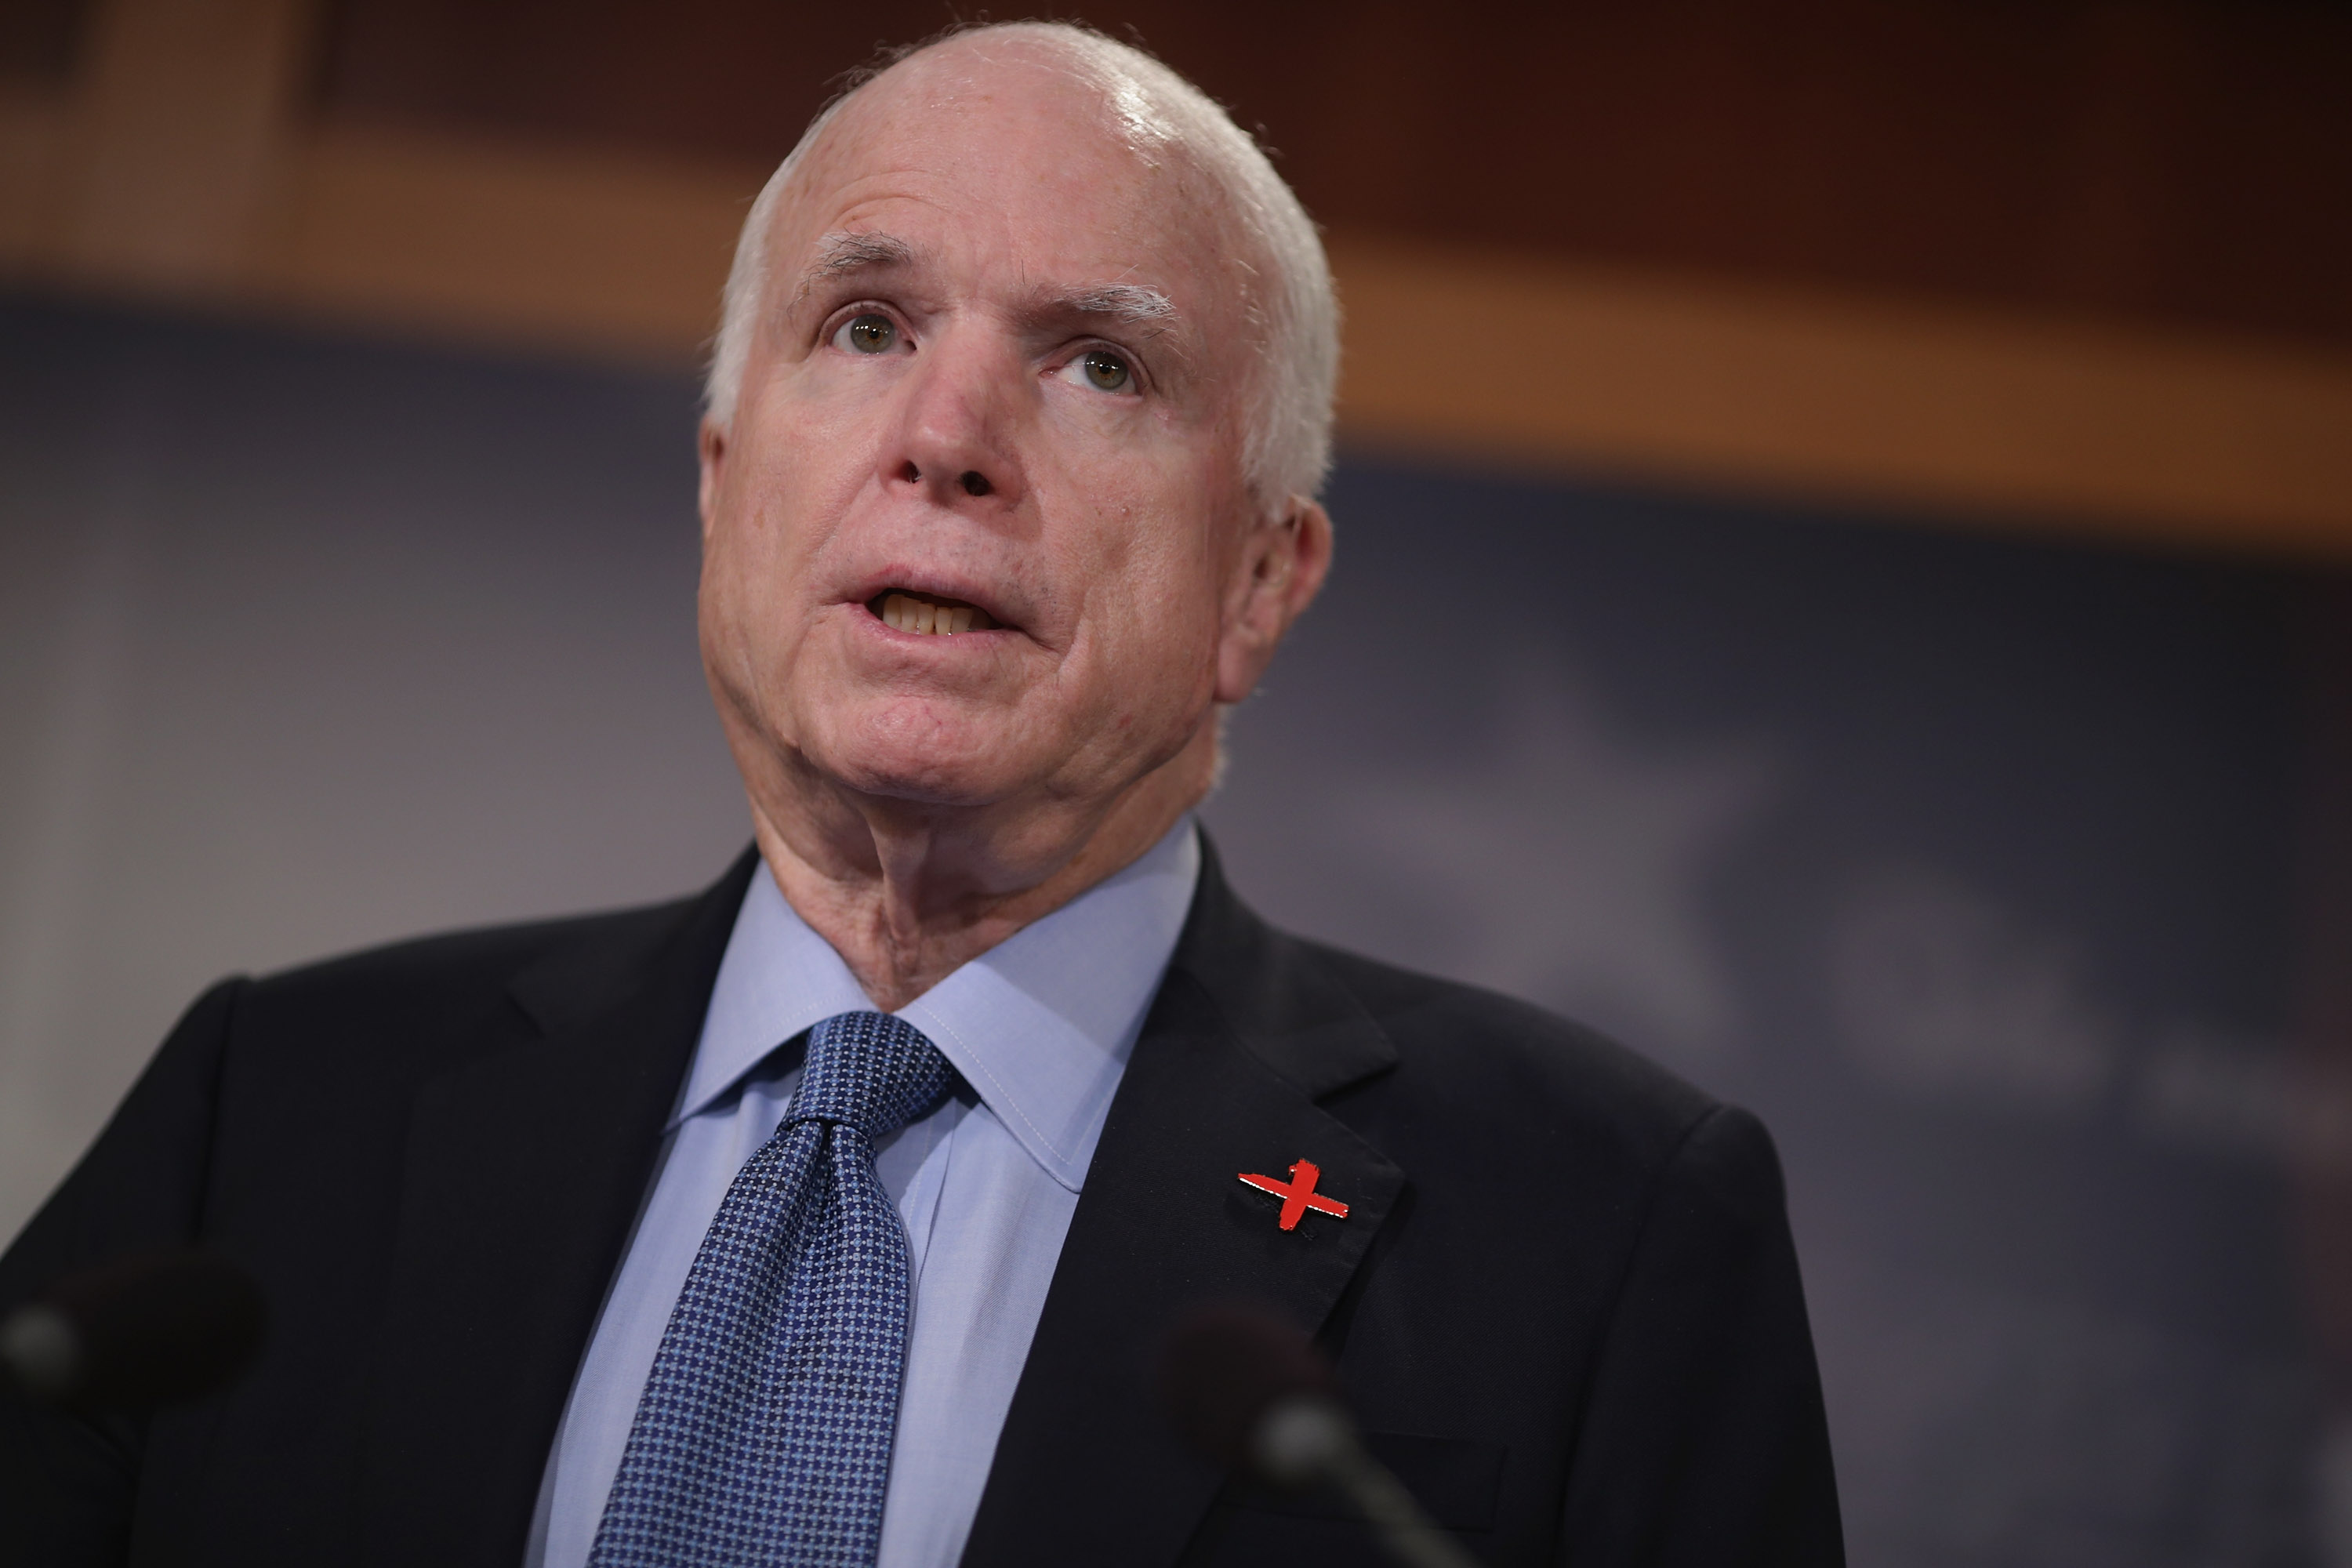 John McCain speaks at a news conference at the U.S. Capitol in Washington, DC on February 24, 2016.